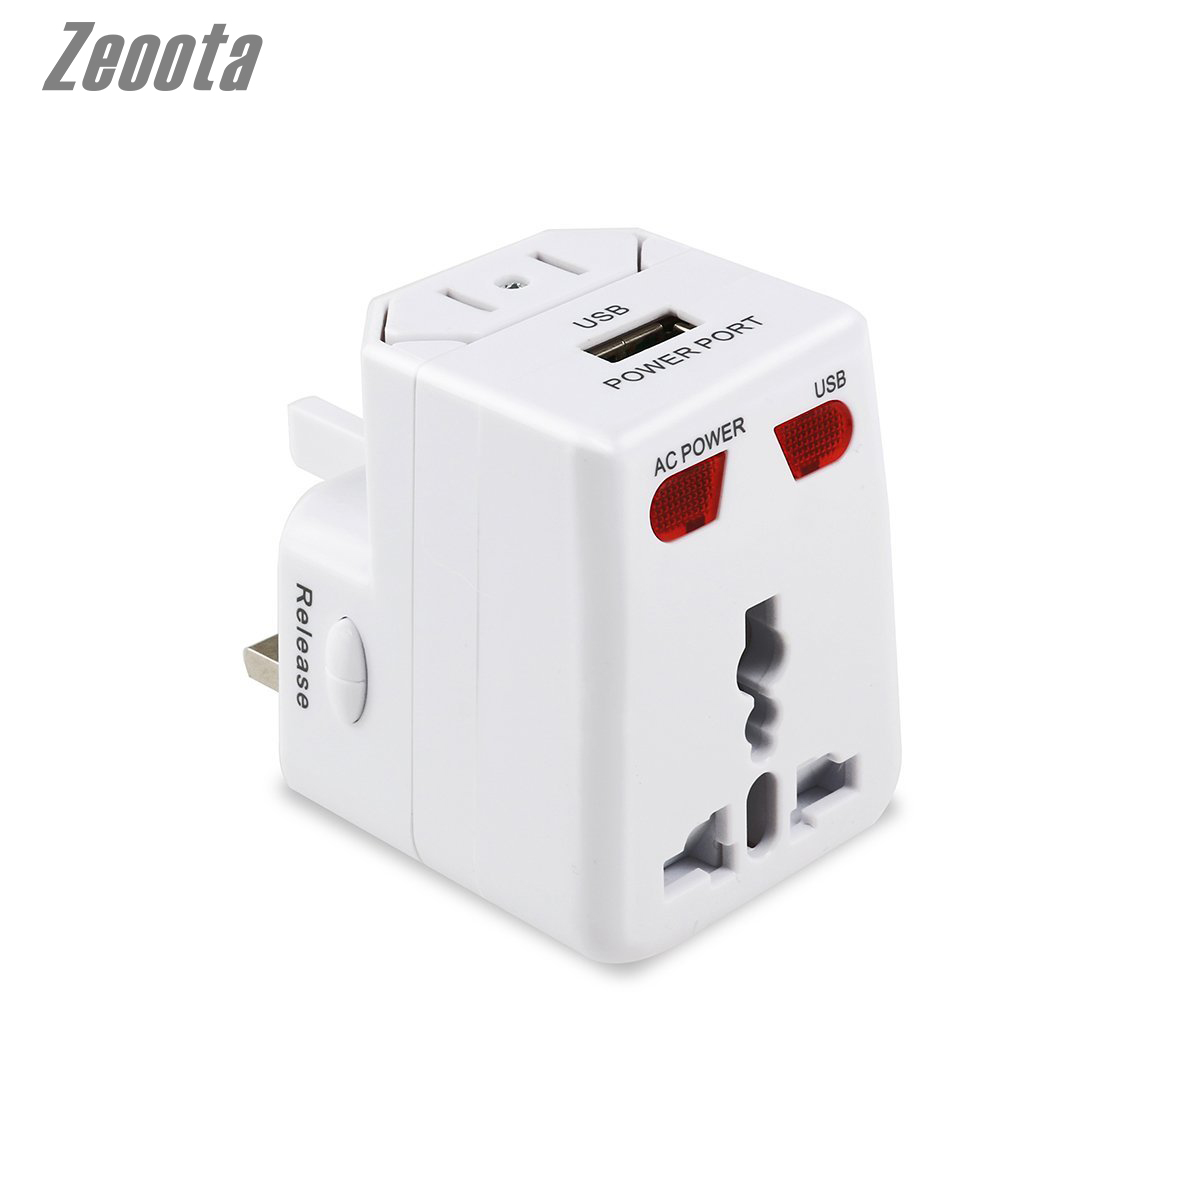 Universal International Travel Switch Socket All-in-One US/EU/UK/AU Plug Travel Wall Charger AC Power Adapter with USB Output